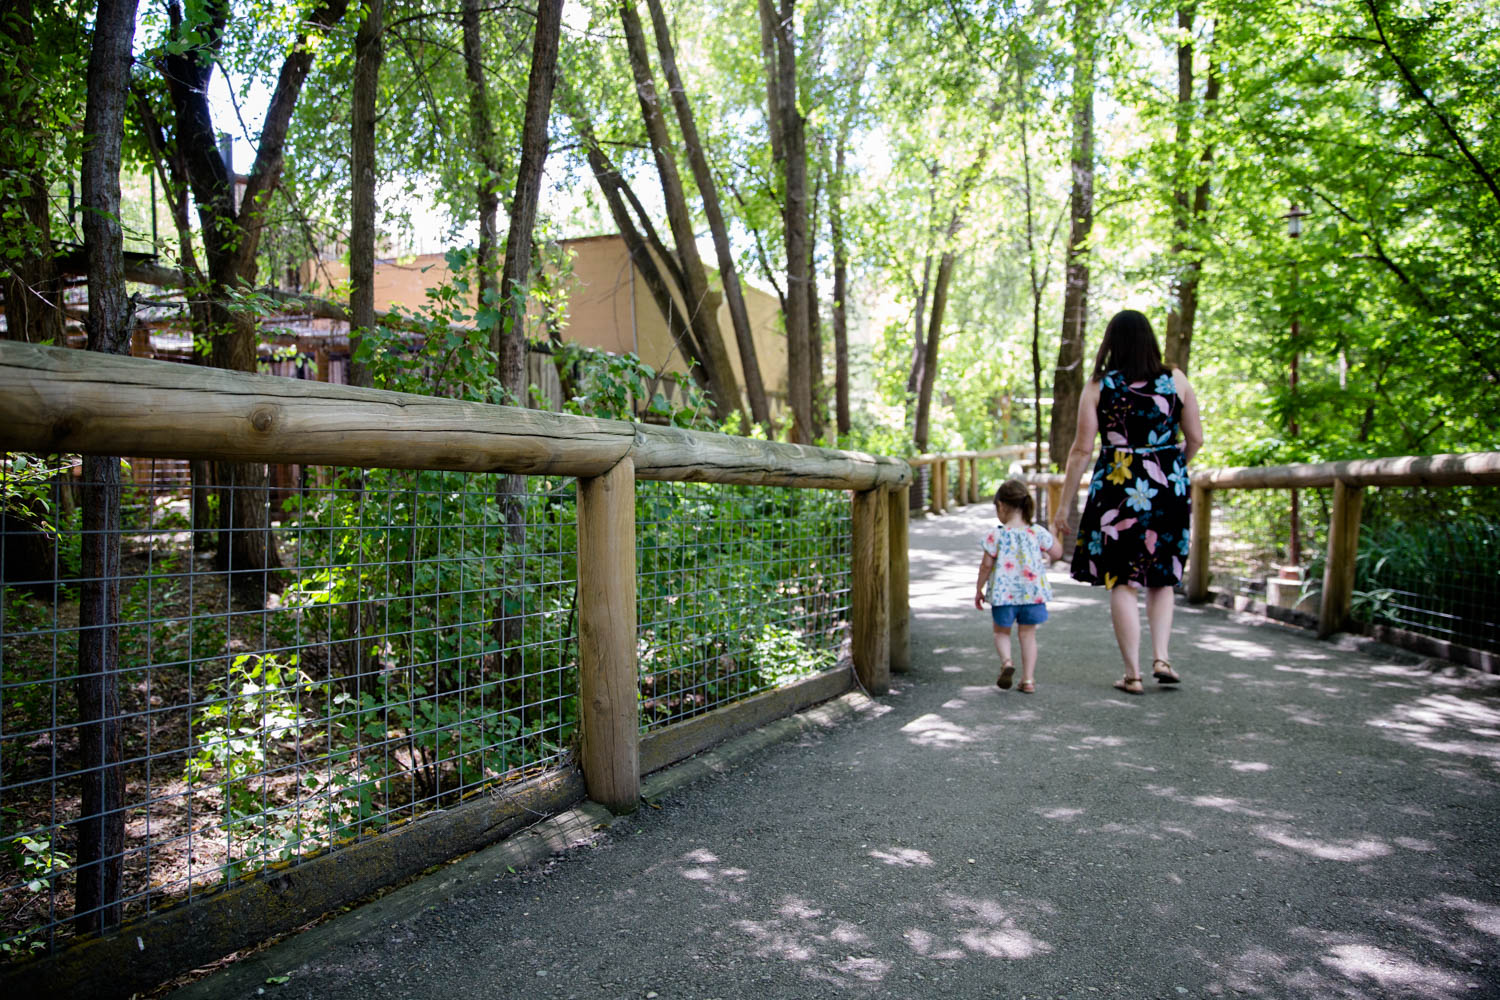 Mom and toddler walking down the pathway in the Zoo Boise area. Walking and holding hands away from camera.